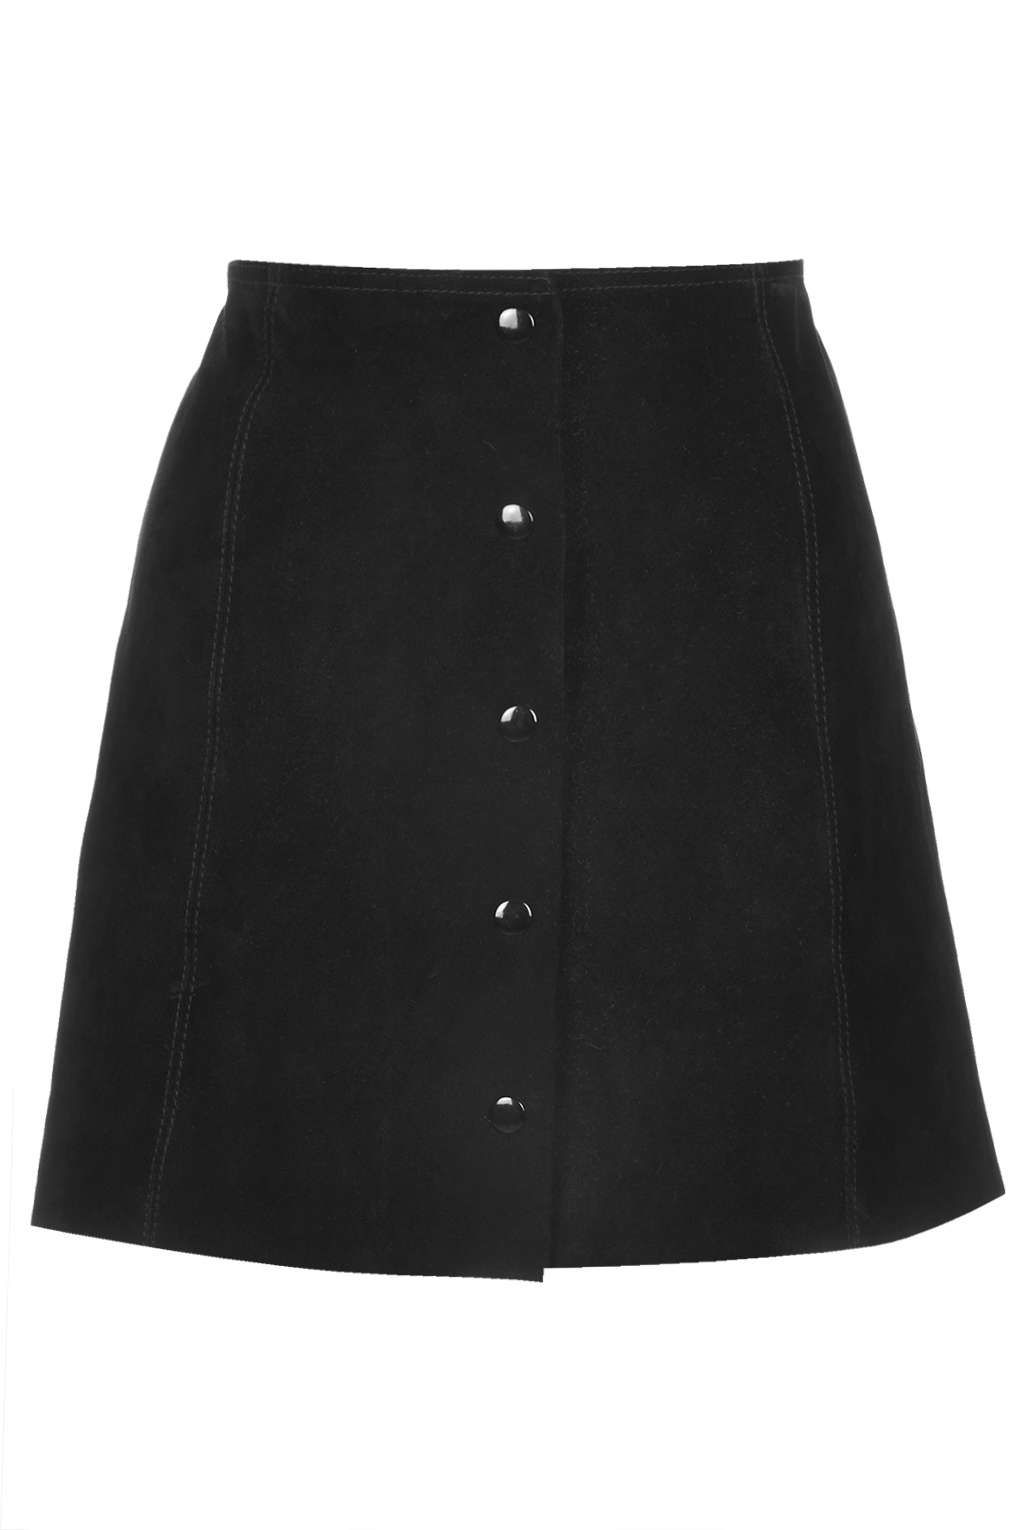 Suede Button Front A-Line Skirt | Topshop, Leather and Online